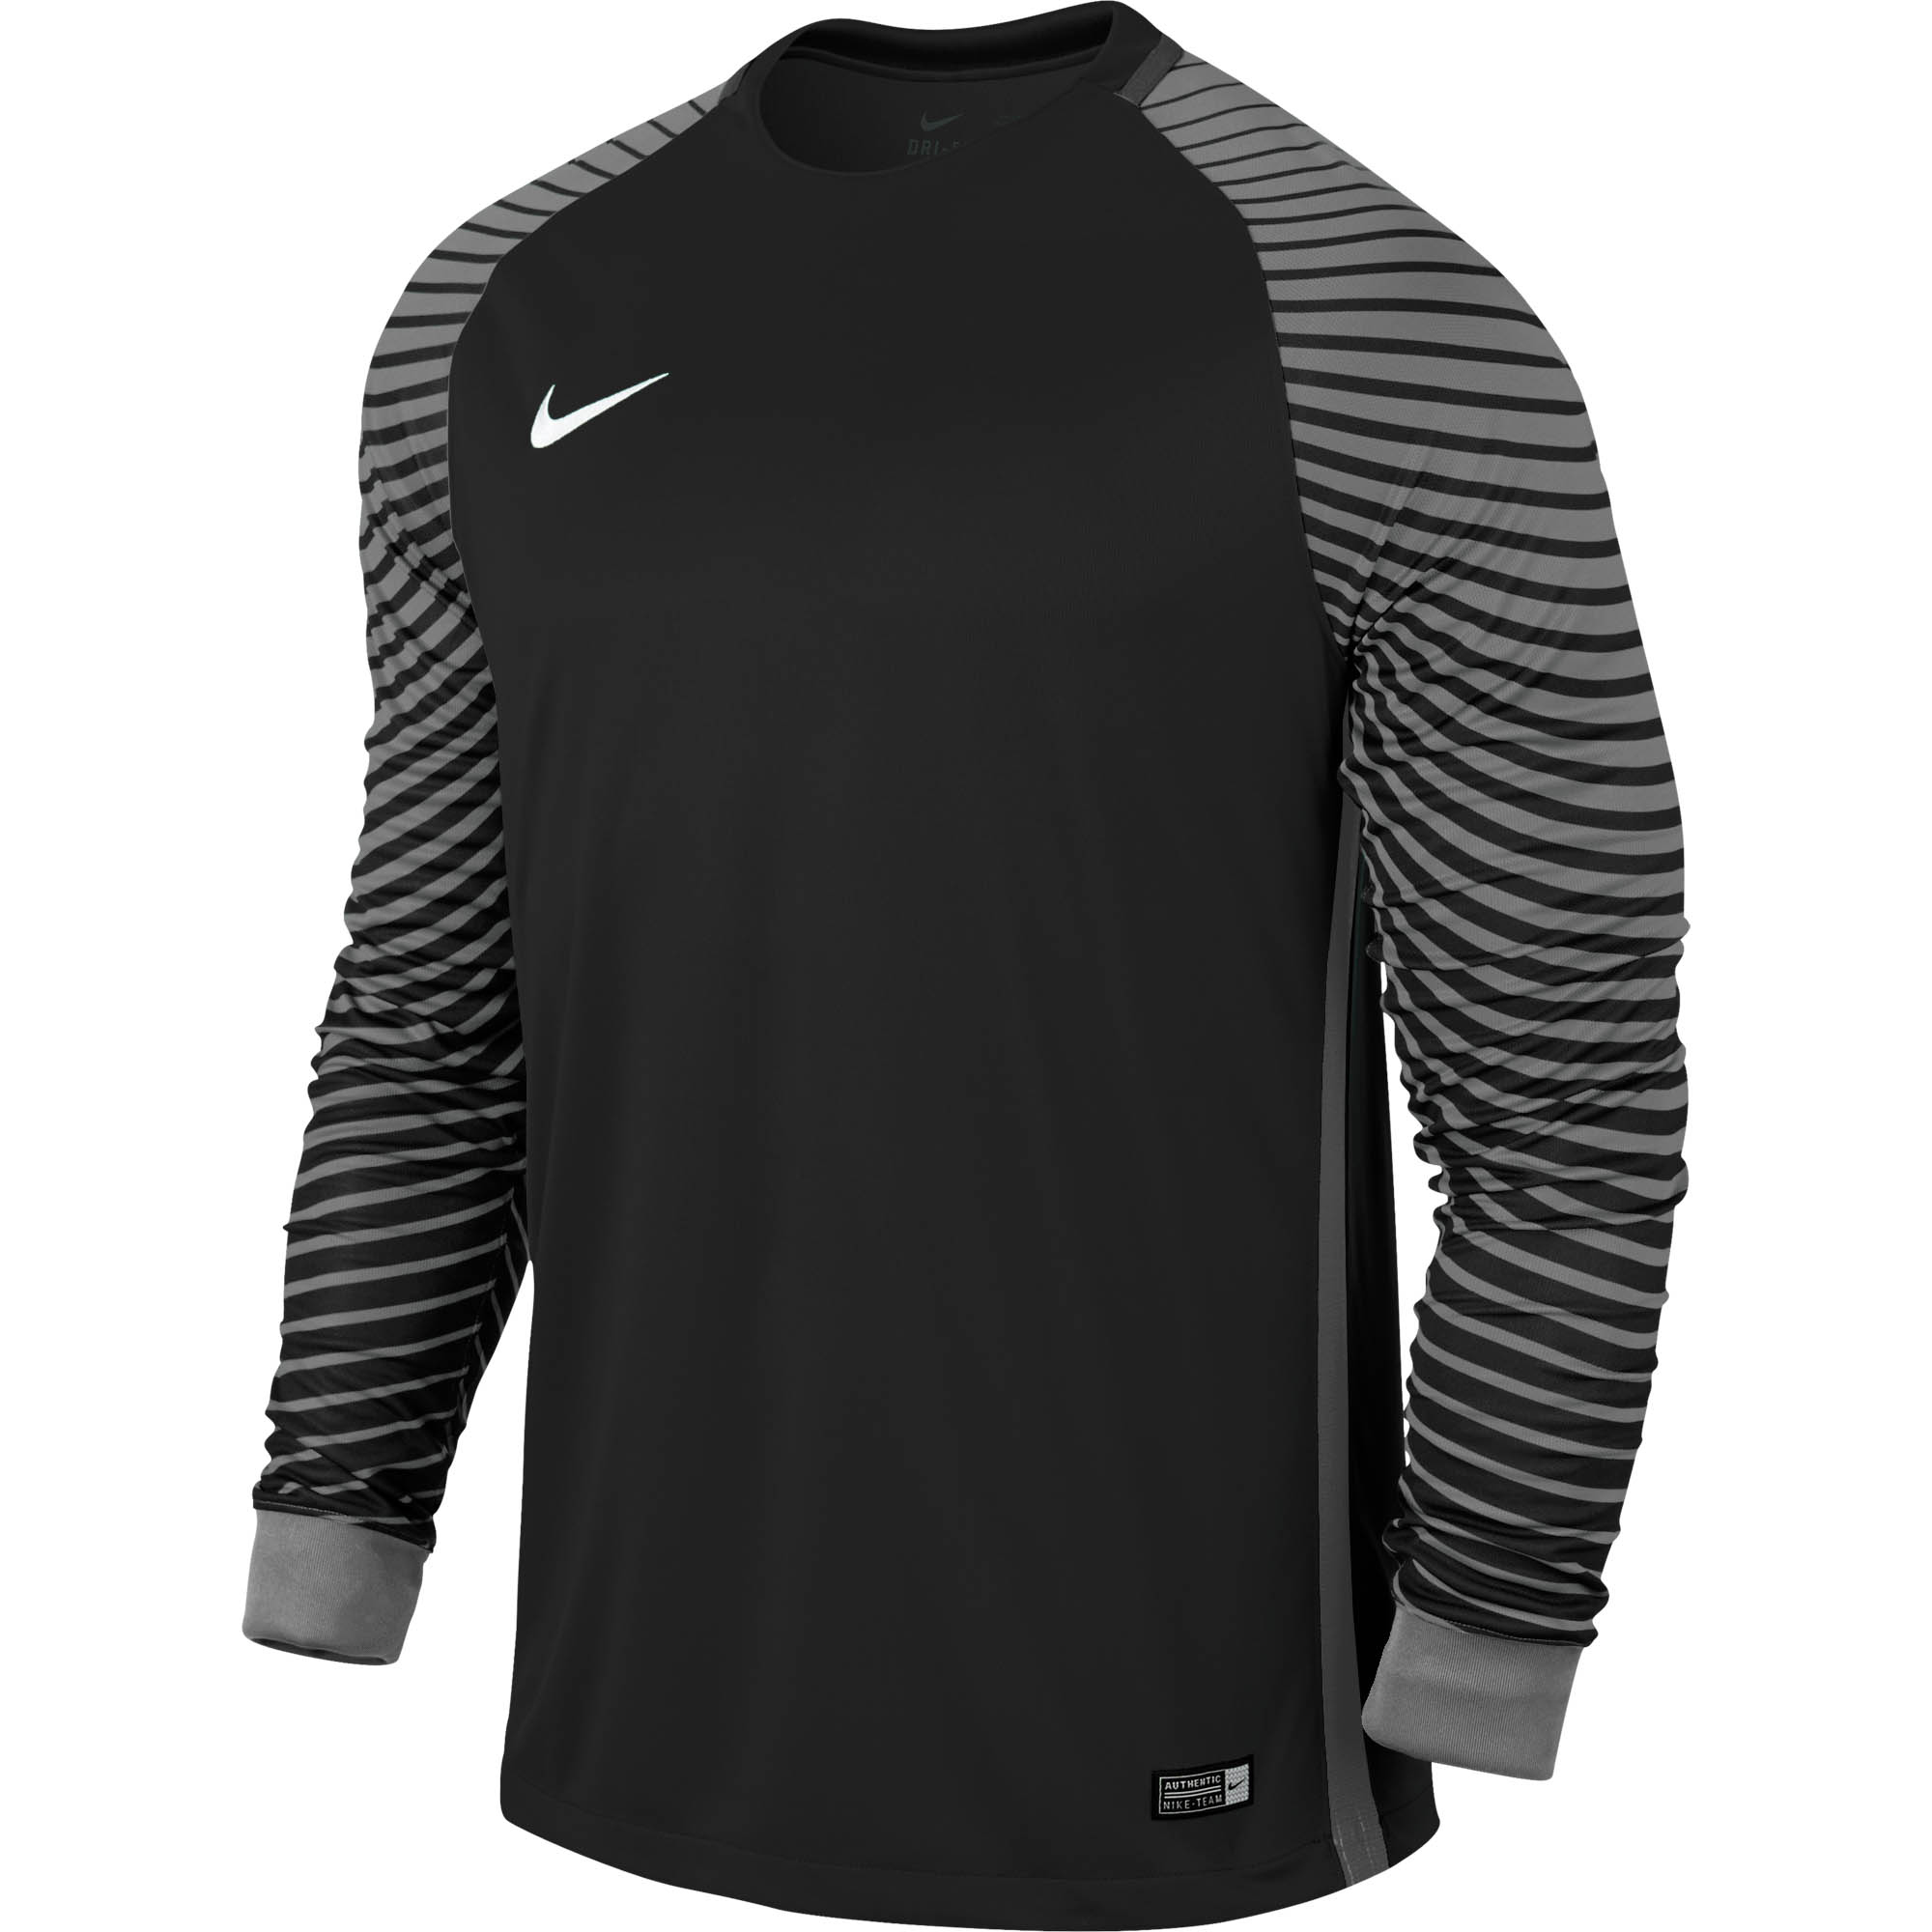 67f1a9232 Nike Gardien Keeper Jersey - Black Goalie Jerseys